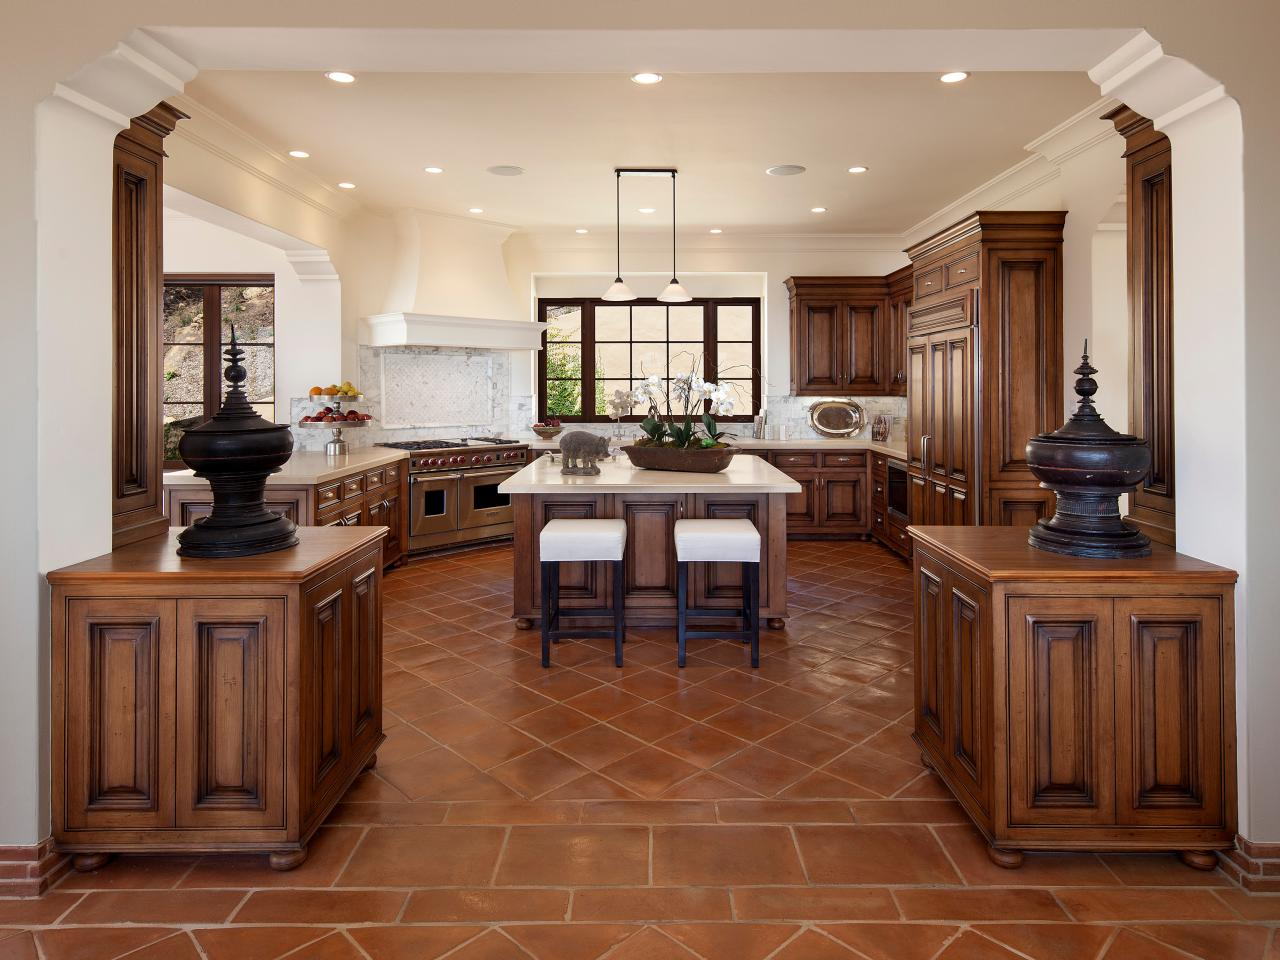 Open Kitchen With Red Clay Tile Floors